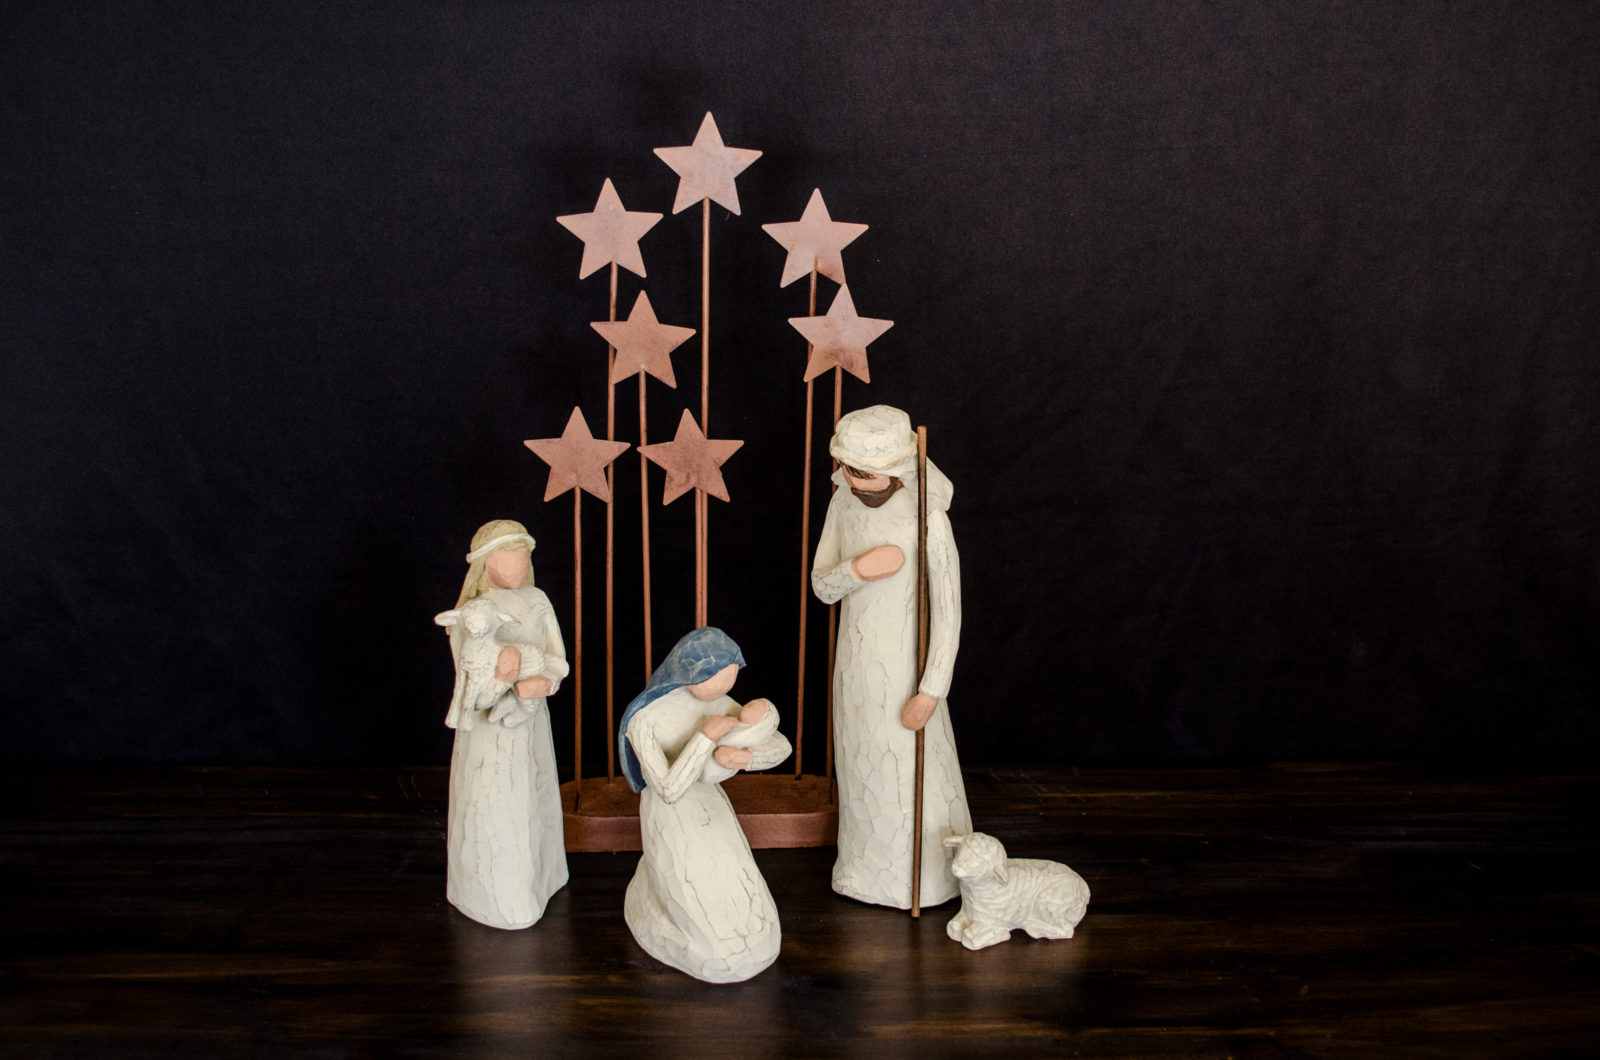 A nativity or creche set with Mary, Joseph, the shepherds, and baby Jesus